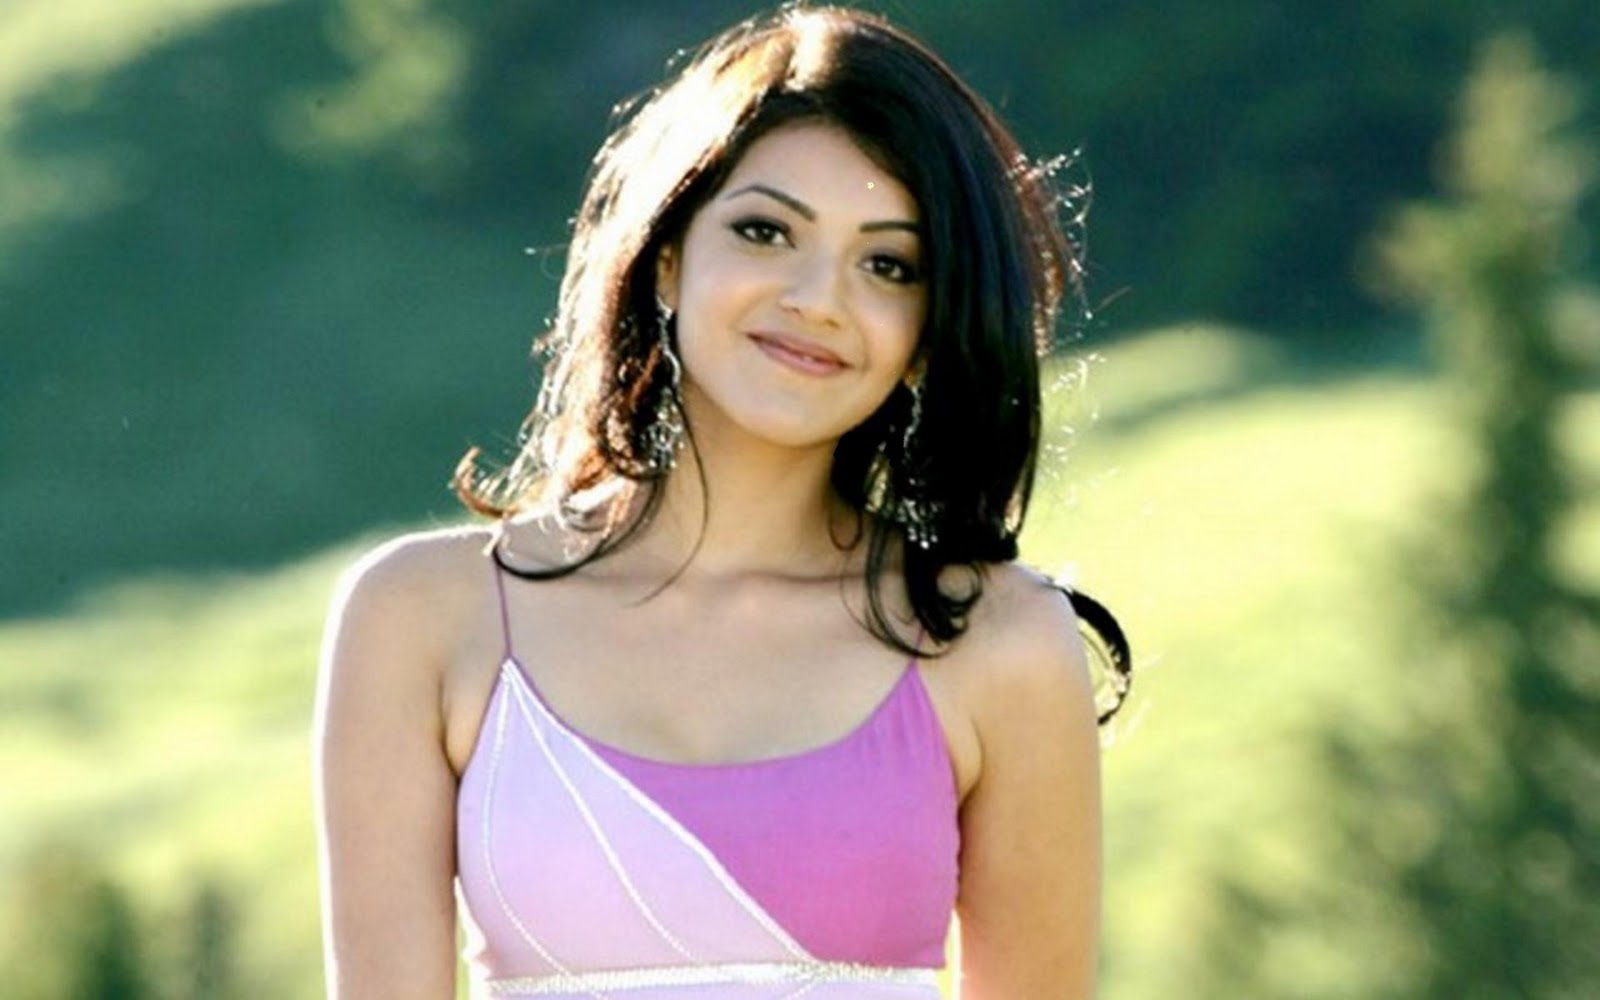 Hd wallpapers for desktop kajal agarwal beautiful face - Pc wallpaper hd bollywood ...